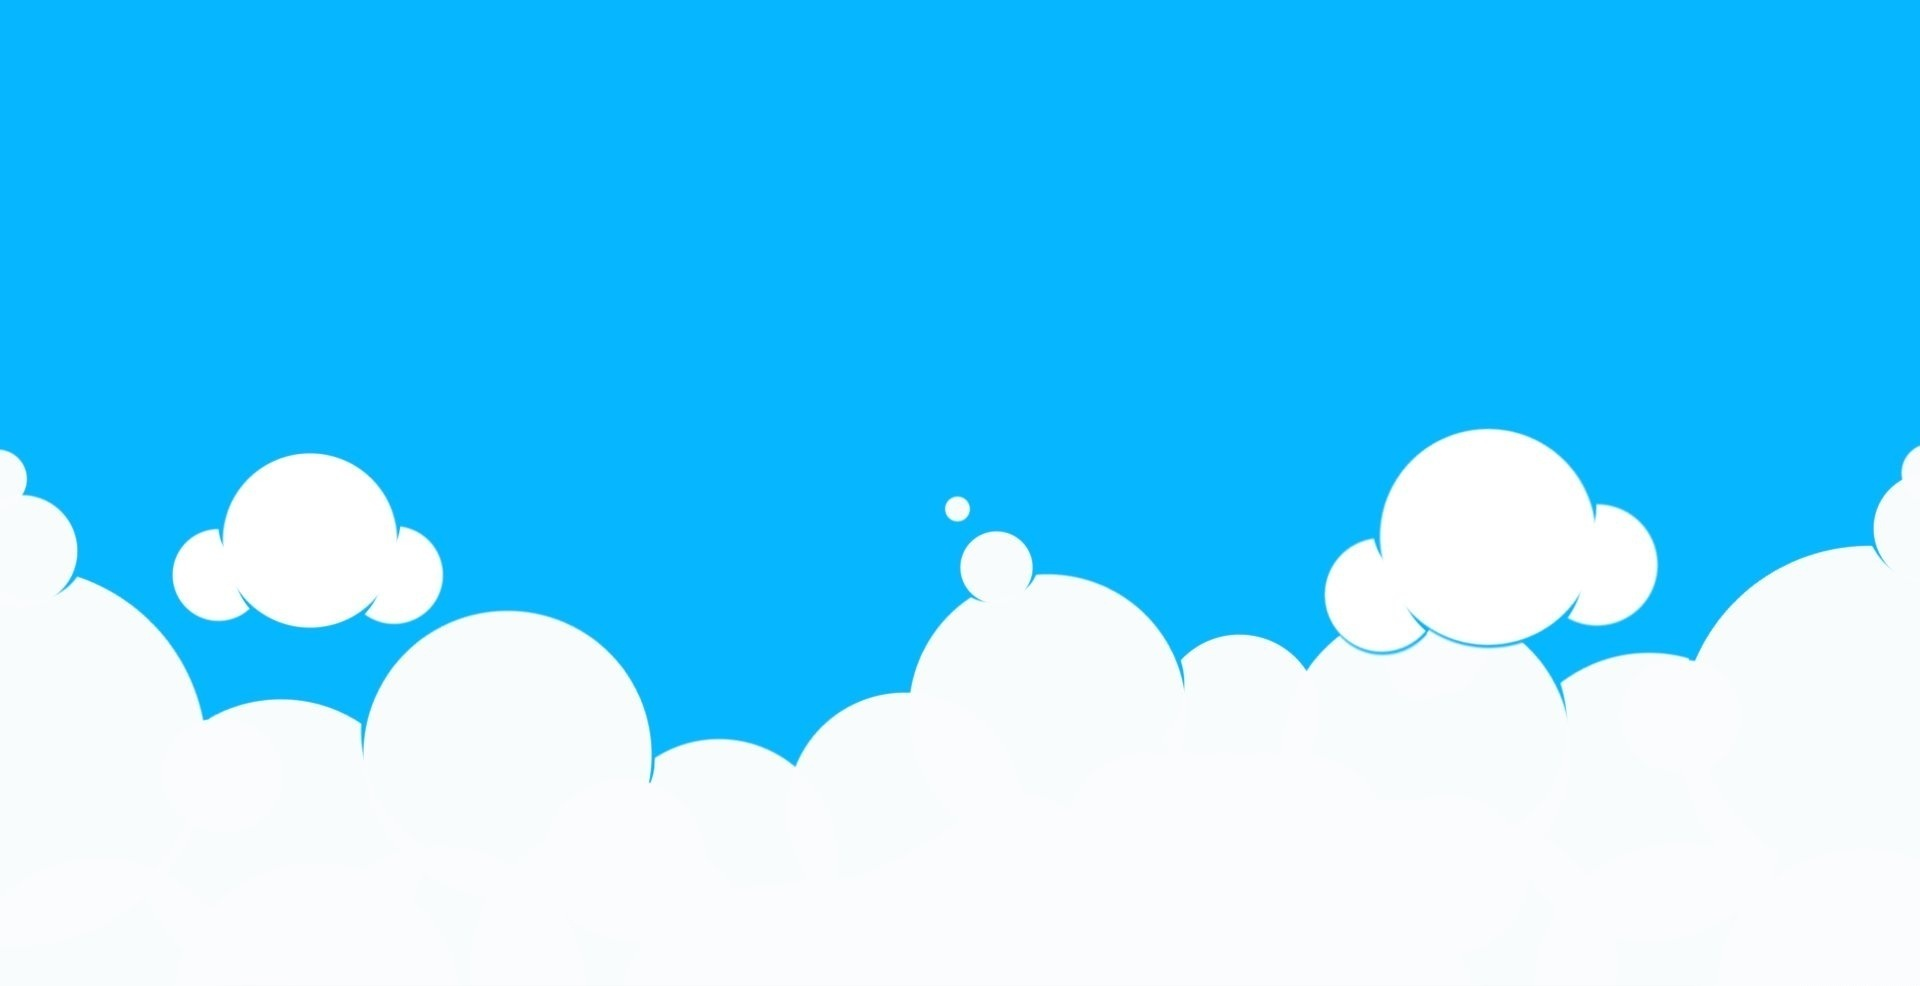 blue2 images blue cloud background HD wallpaper and ...